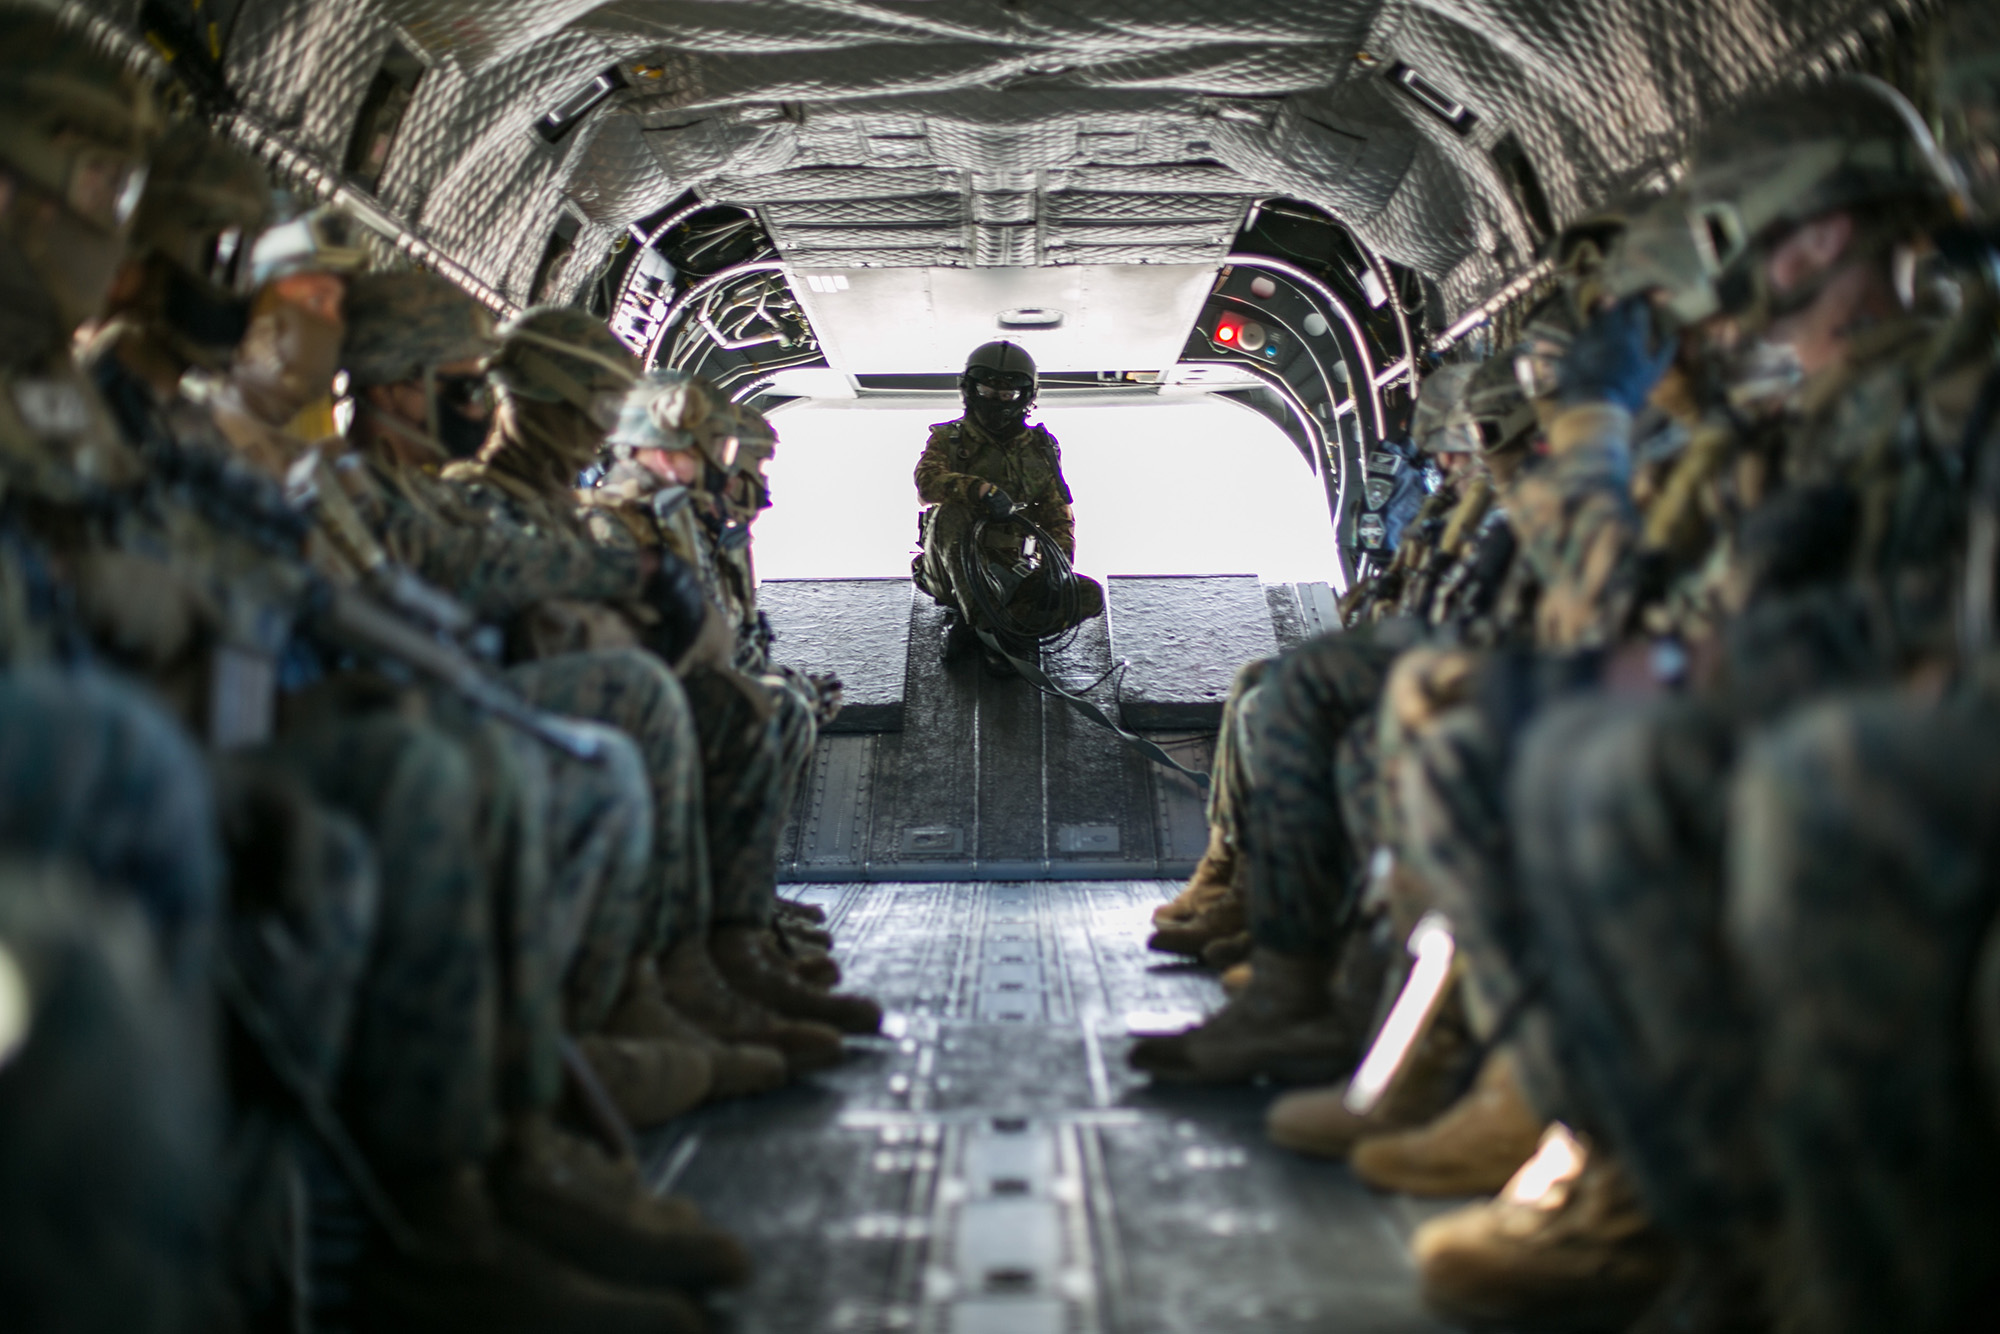 A crew chief with the 30th Infantry Regiment, 12th Brigade, Japan Ground Self-Defense Force and U.S. Marines conduct an air assault during exercise Forest Light Eastern Army in mainland Japan, on Dec. 15, 2020. (Cpl. Levi J. Guerra/Marine Corps)